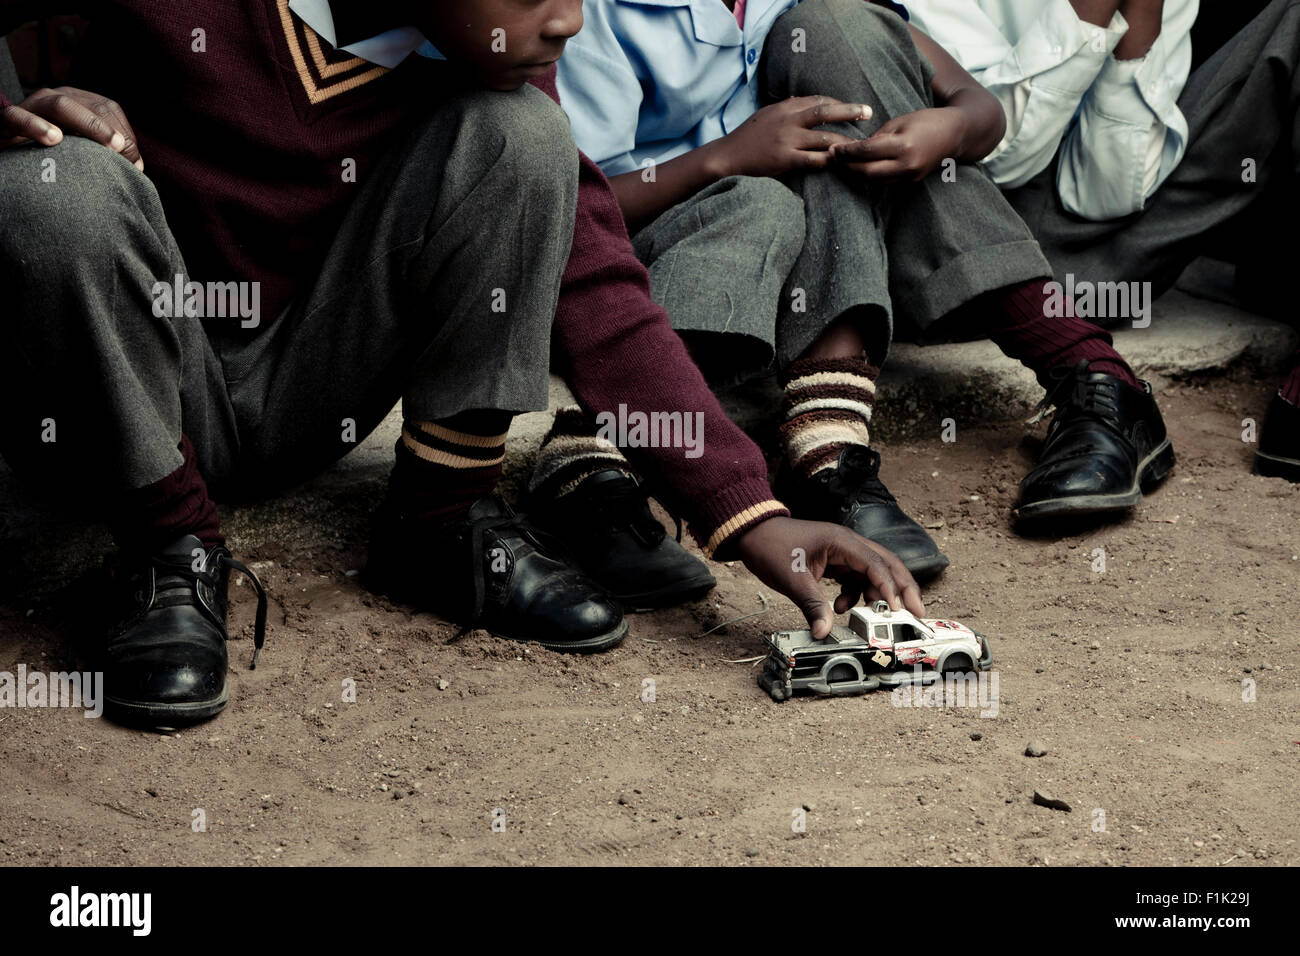 Group of African school children playing with a toy car outside - Stock Image